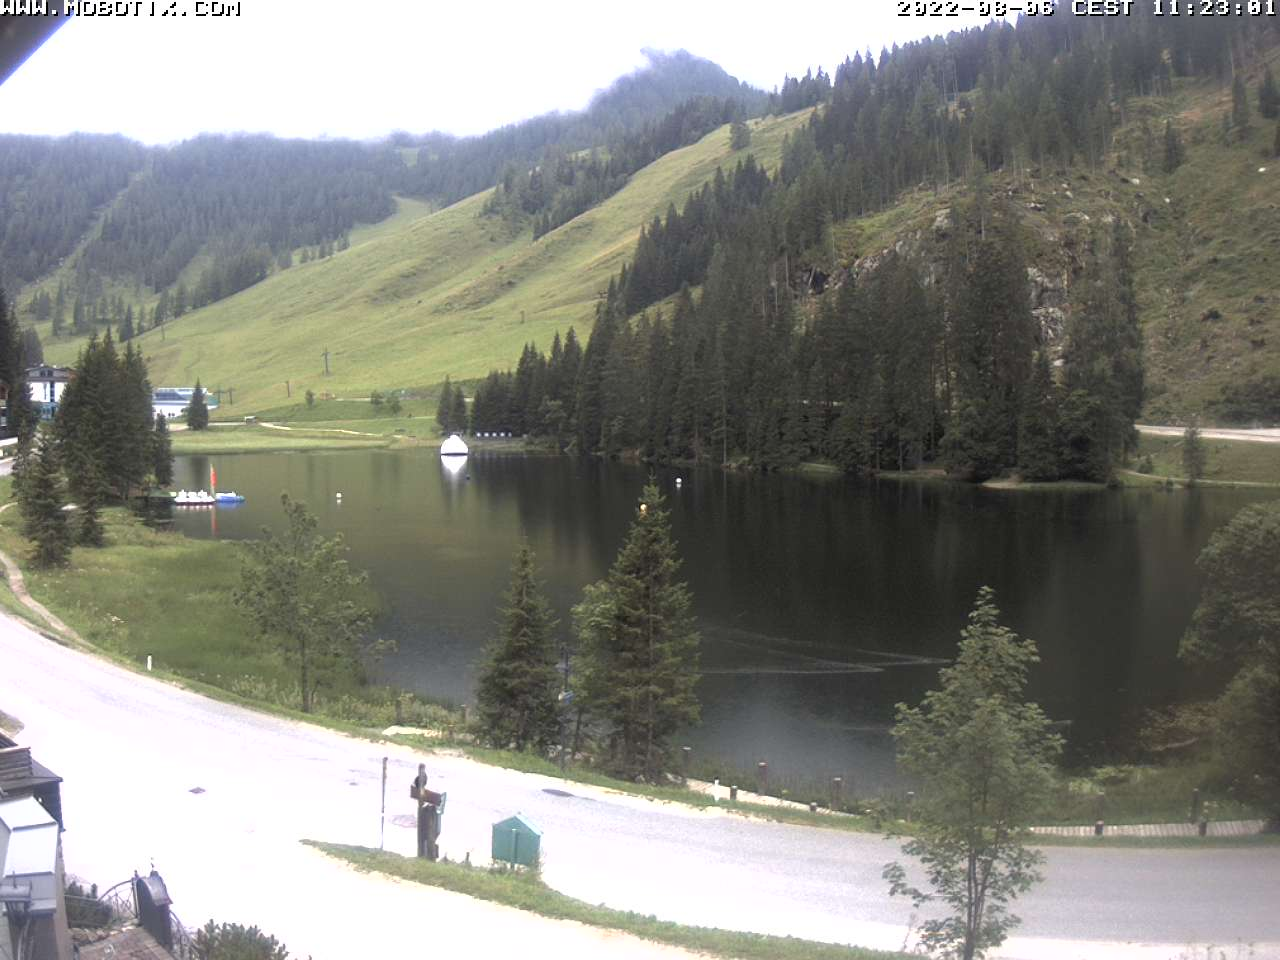 Webcam Weltmeister Skischule Top Alpin Walchhofer Zauchensee